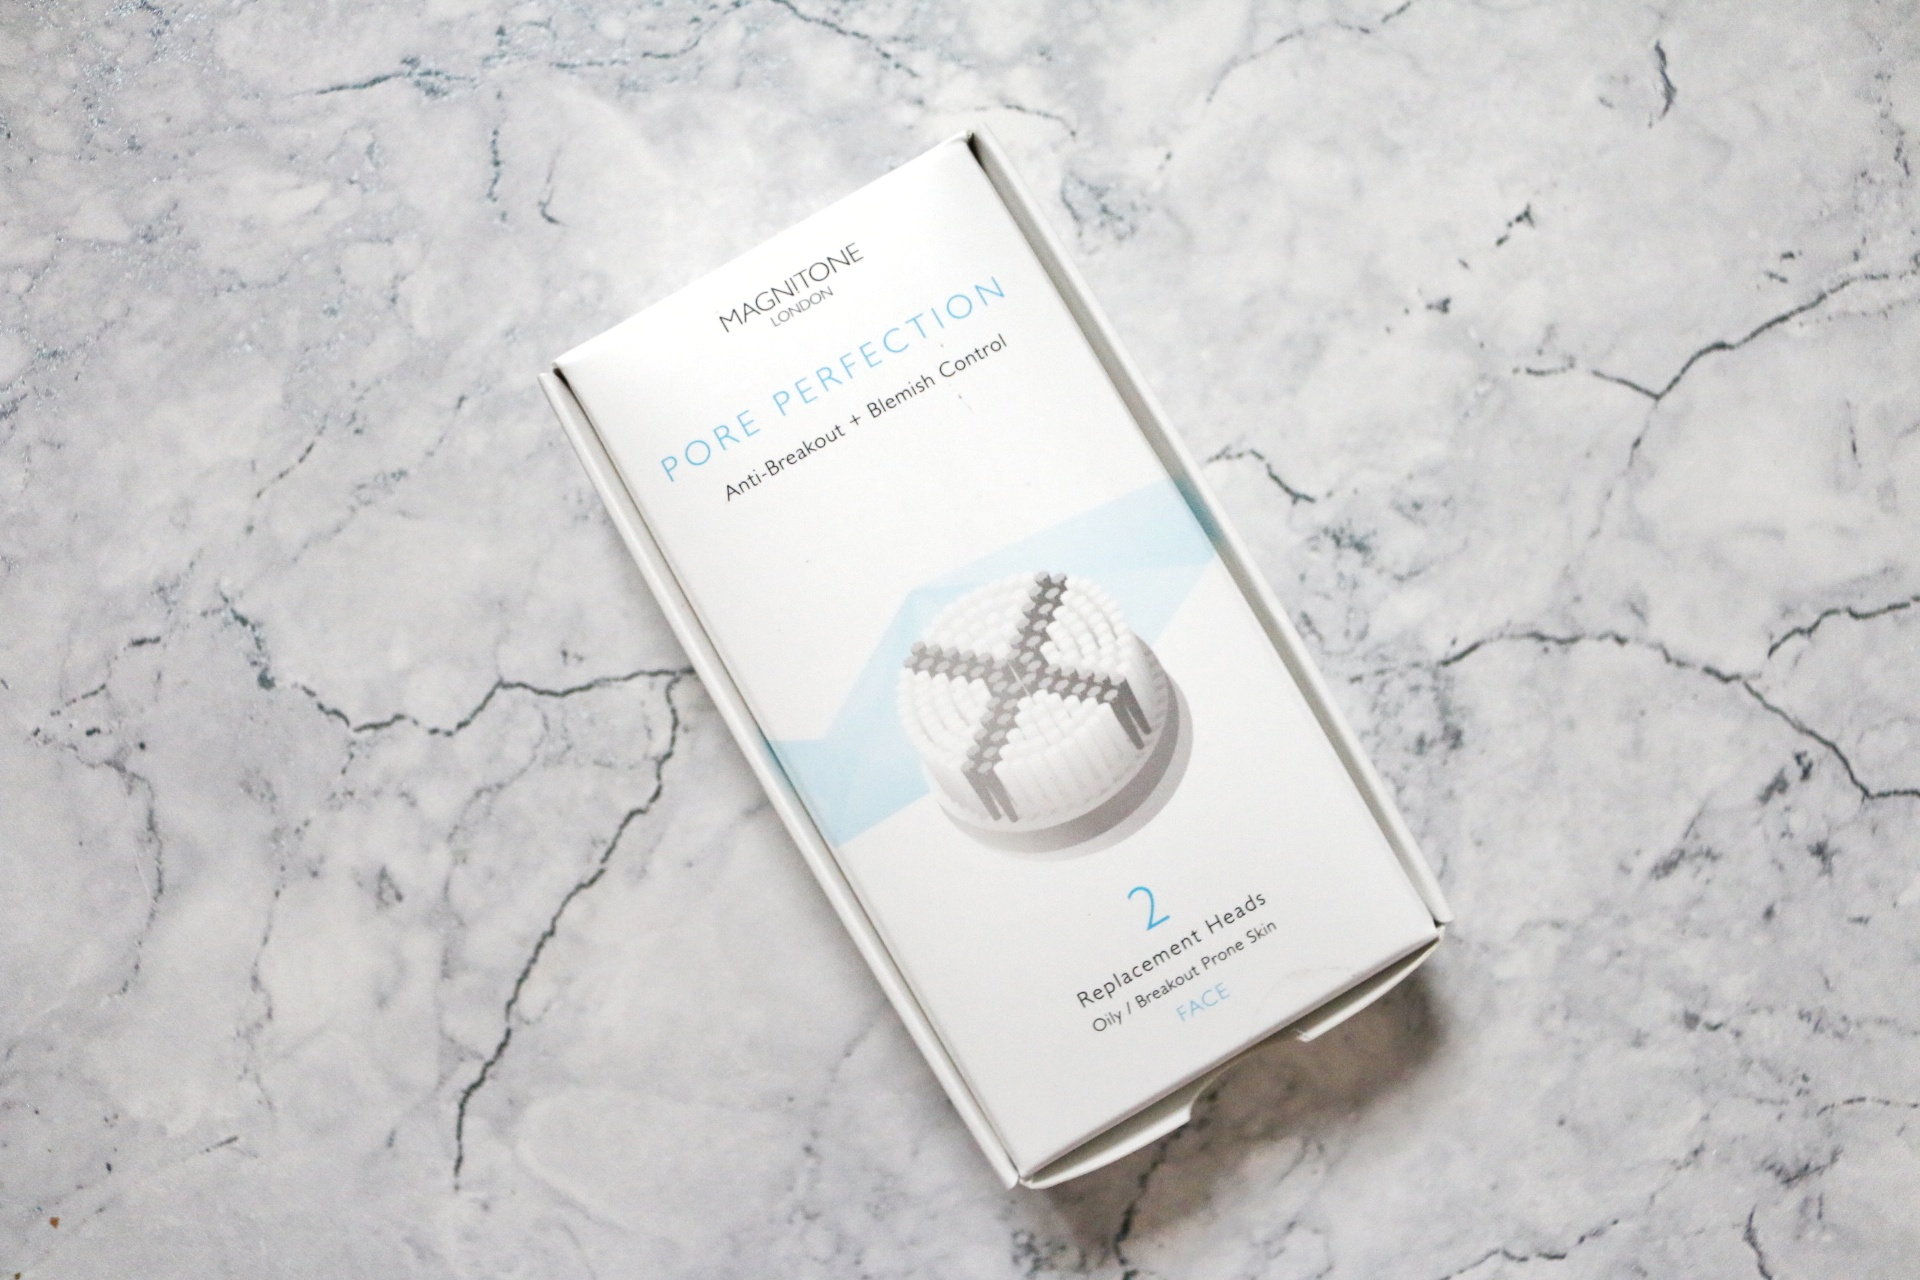 Birds eye view of the Magnitone Pore Perfection anti-break out + blemish control brush head